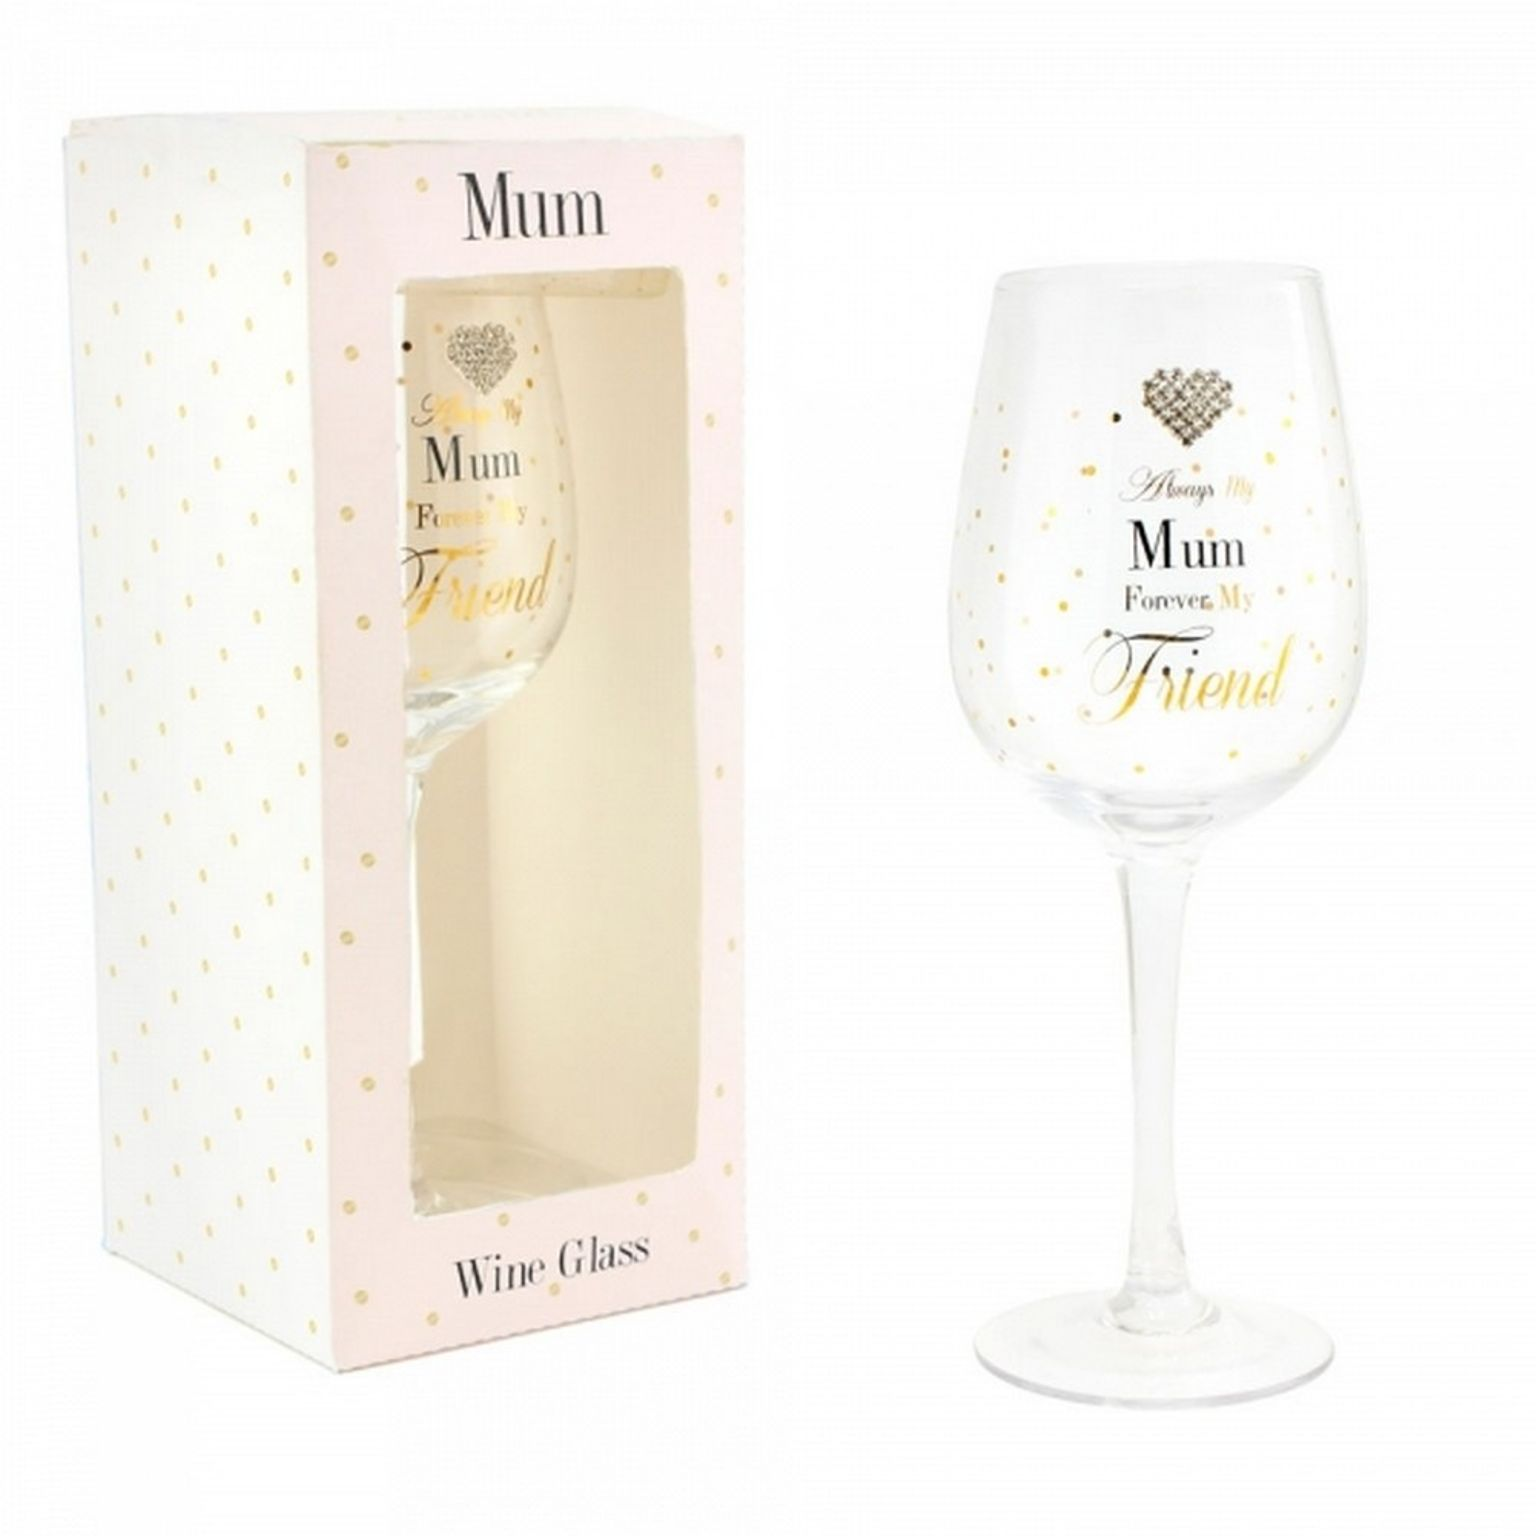 Hearts Designs Wine Glass Mum